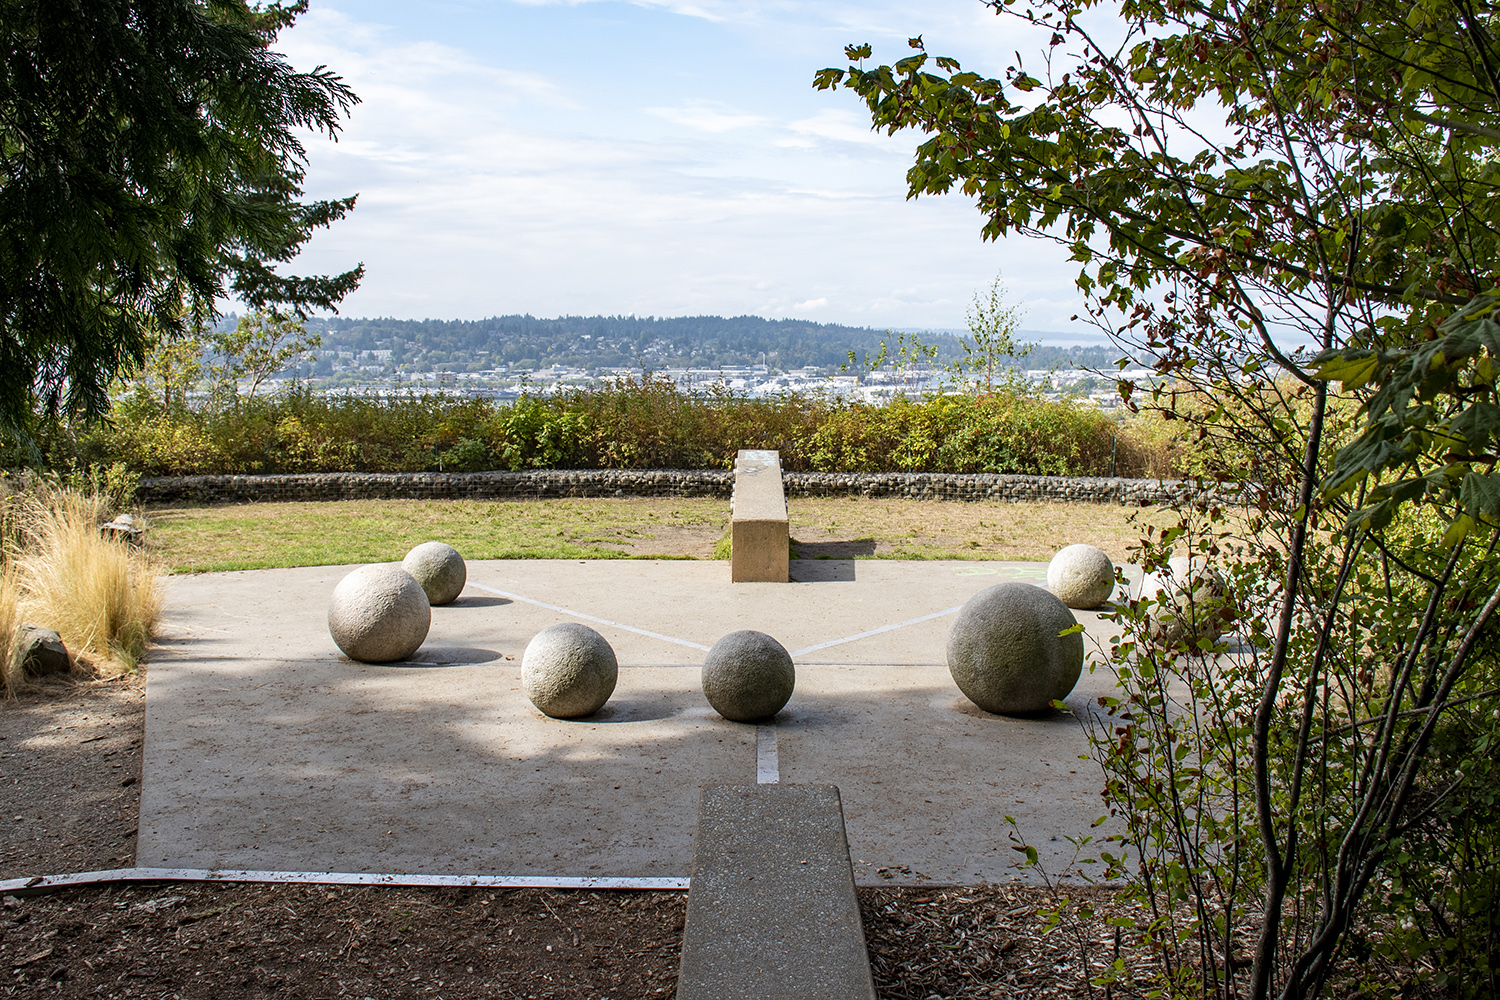 Located on a bluff, Fremont Peak Park offers visitors a half-acre park with elevated views of the Puget Sound and the Olympics. Enjoy the landscaped meadow, spherical art installations and sunset views from this tiny upper Fremont spot.{ }(Image: Rachael Jones / Seattle Refined)